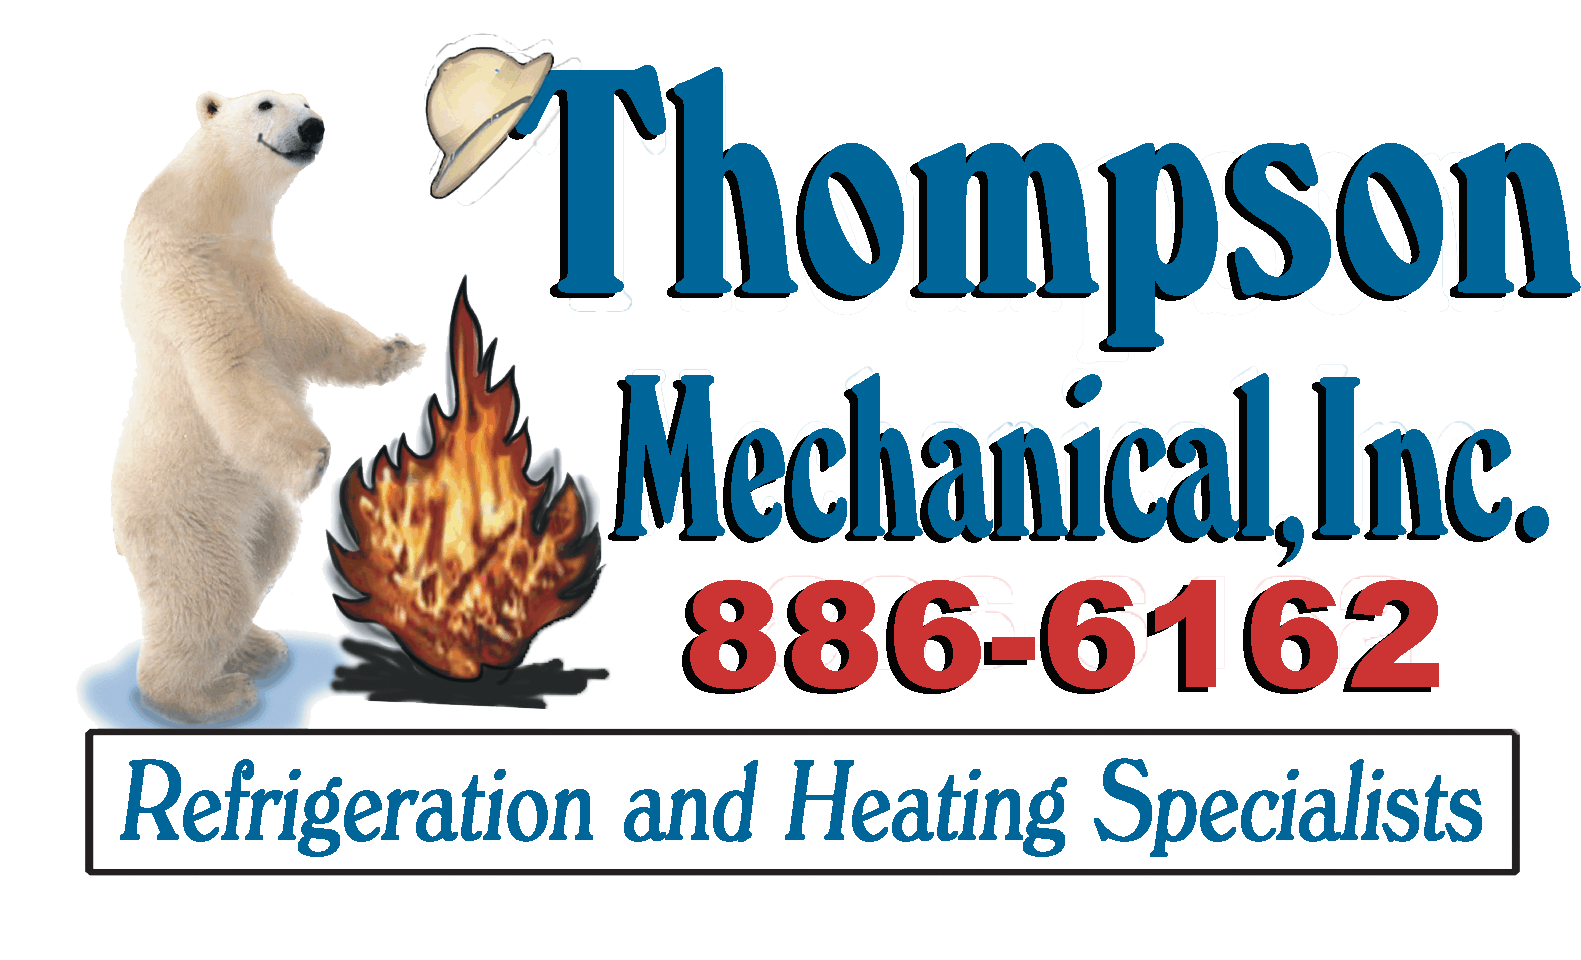 Thompson Mechanical Inc.